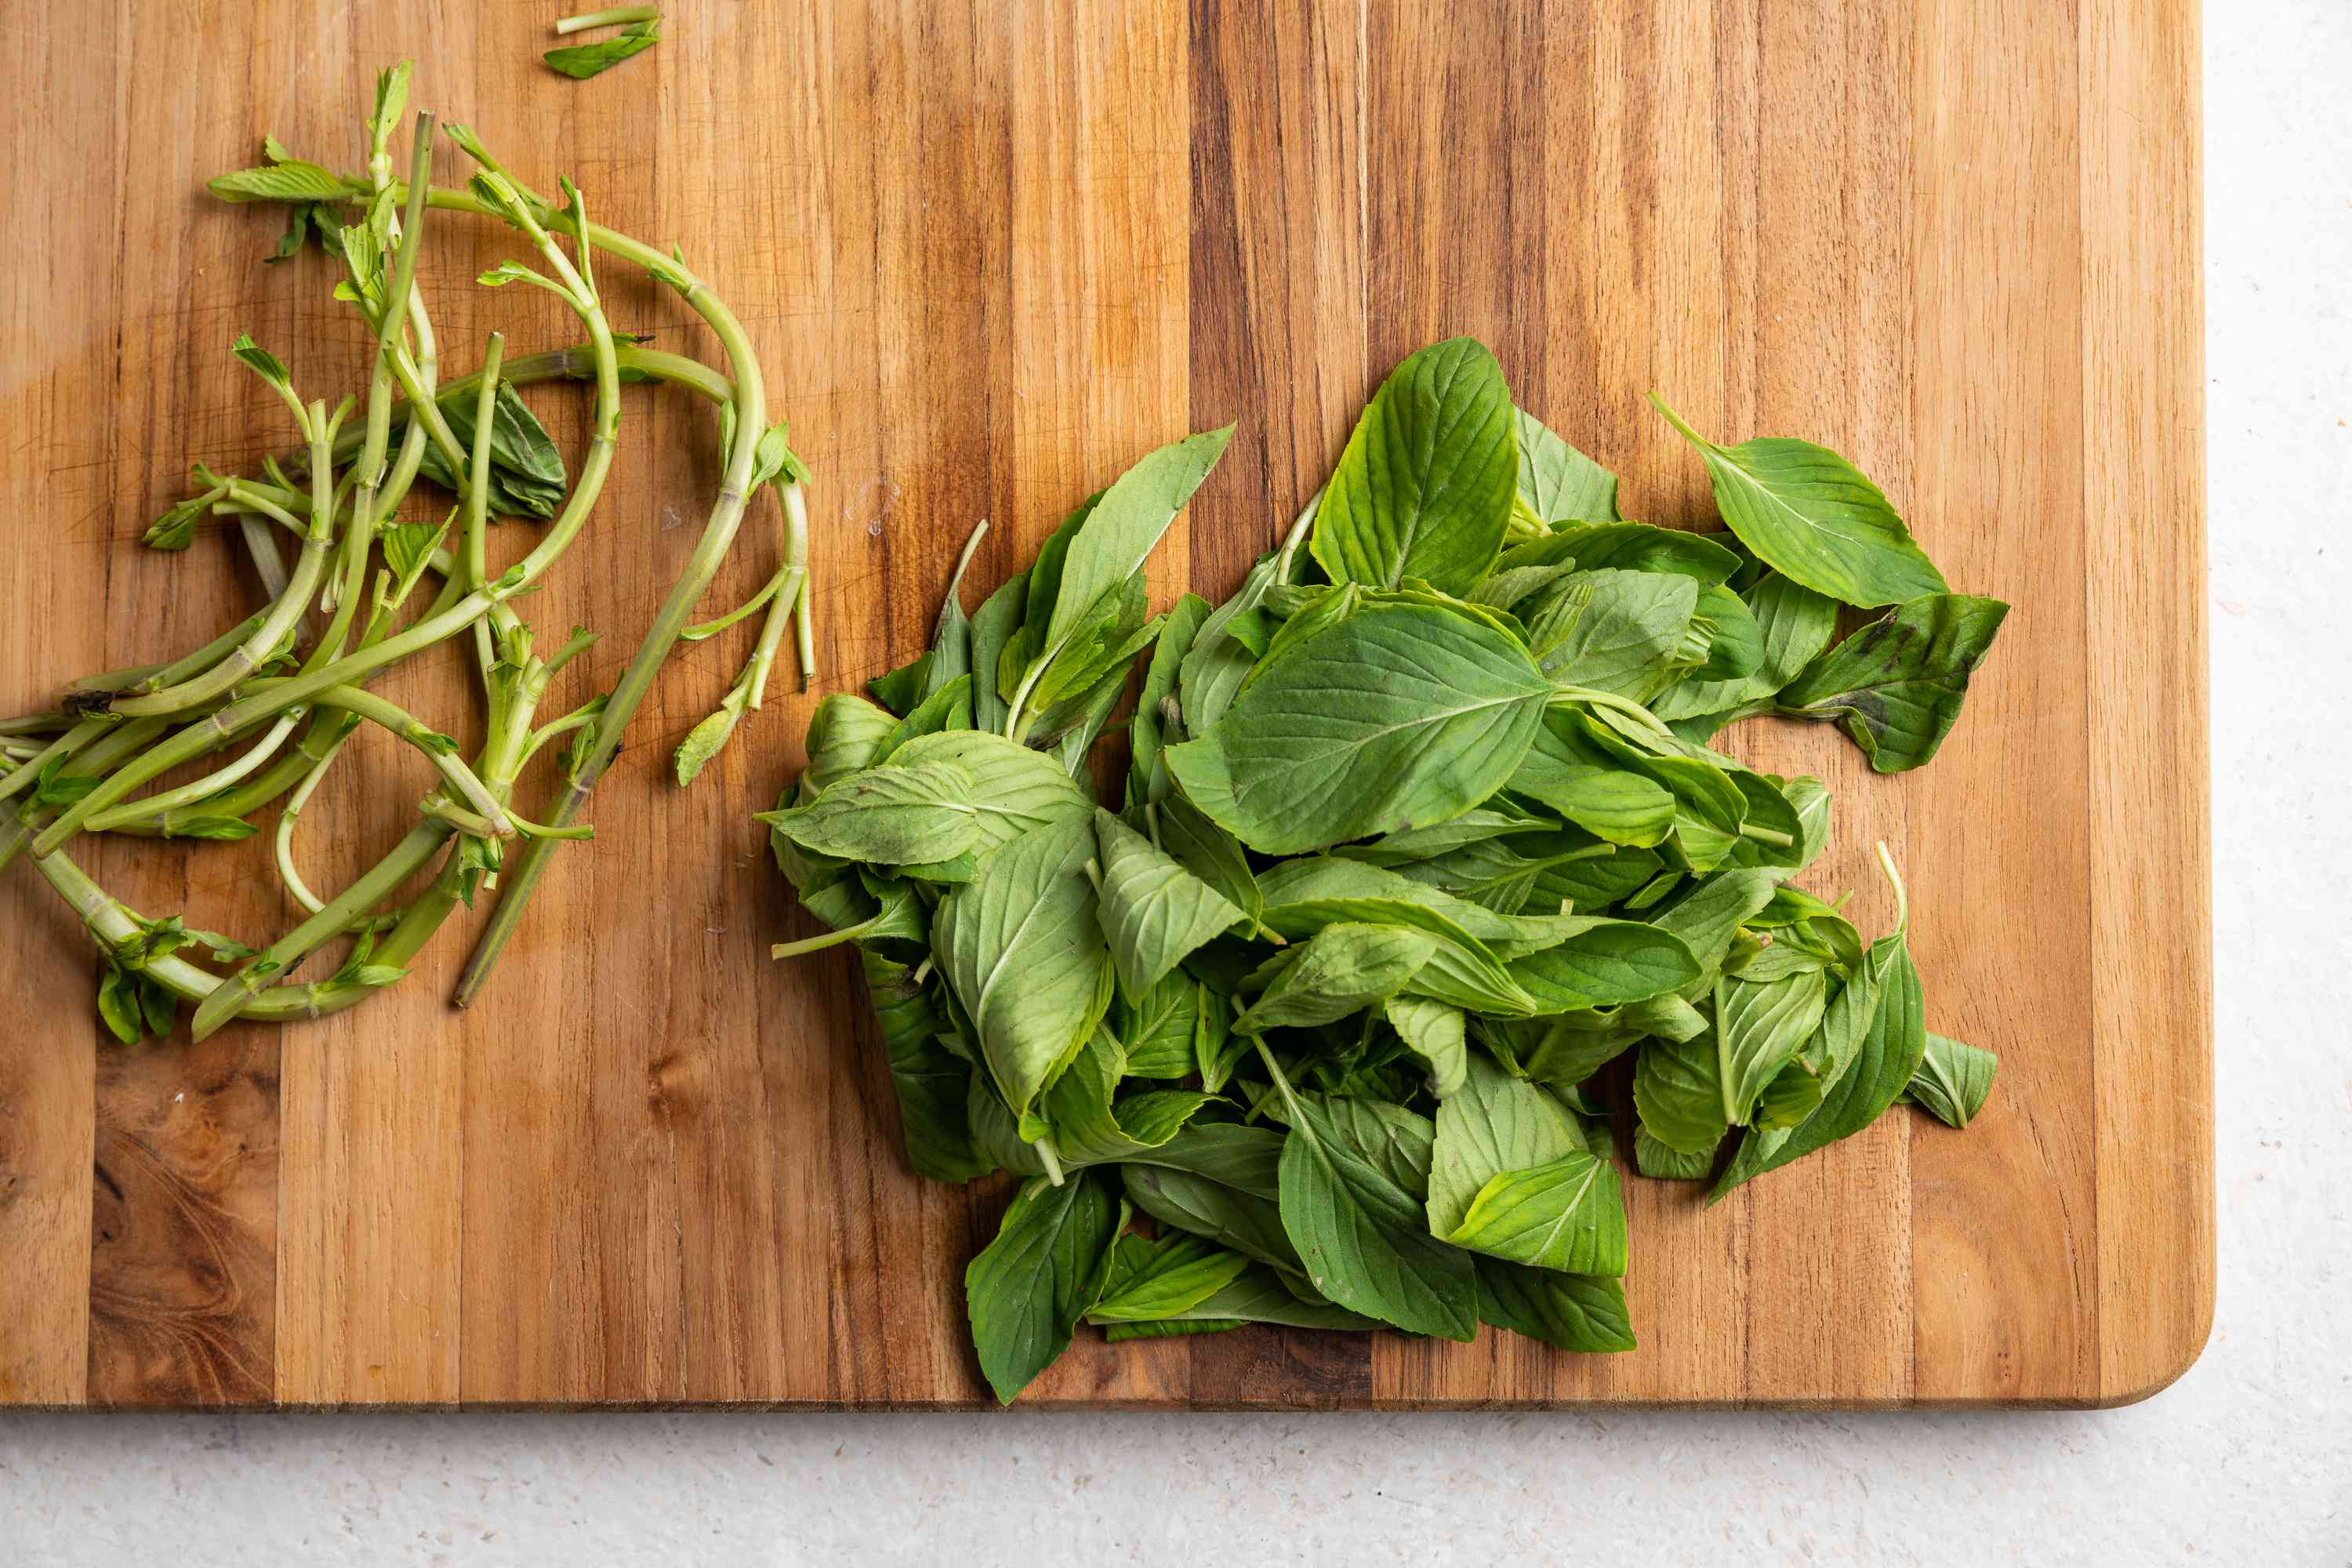 Separate the chili leaves from any stalks